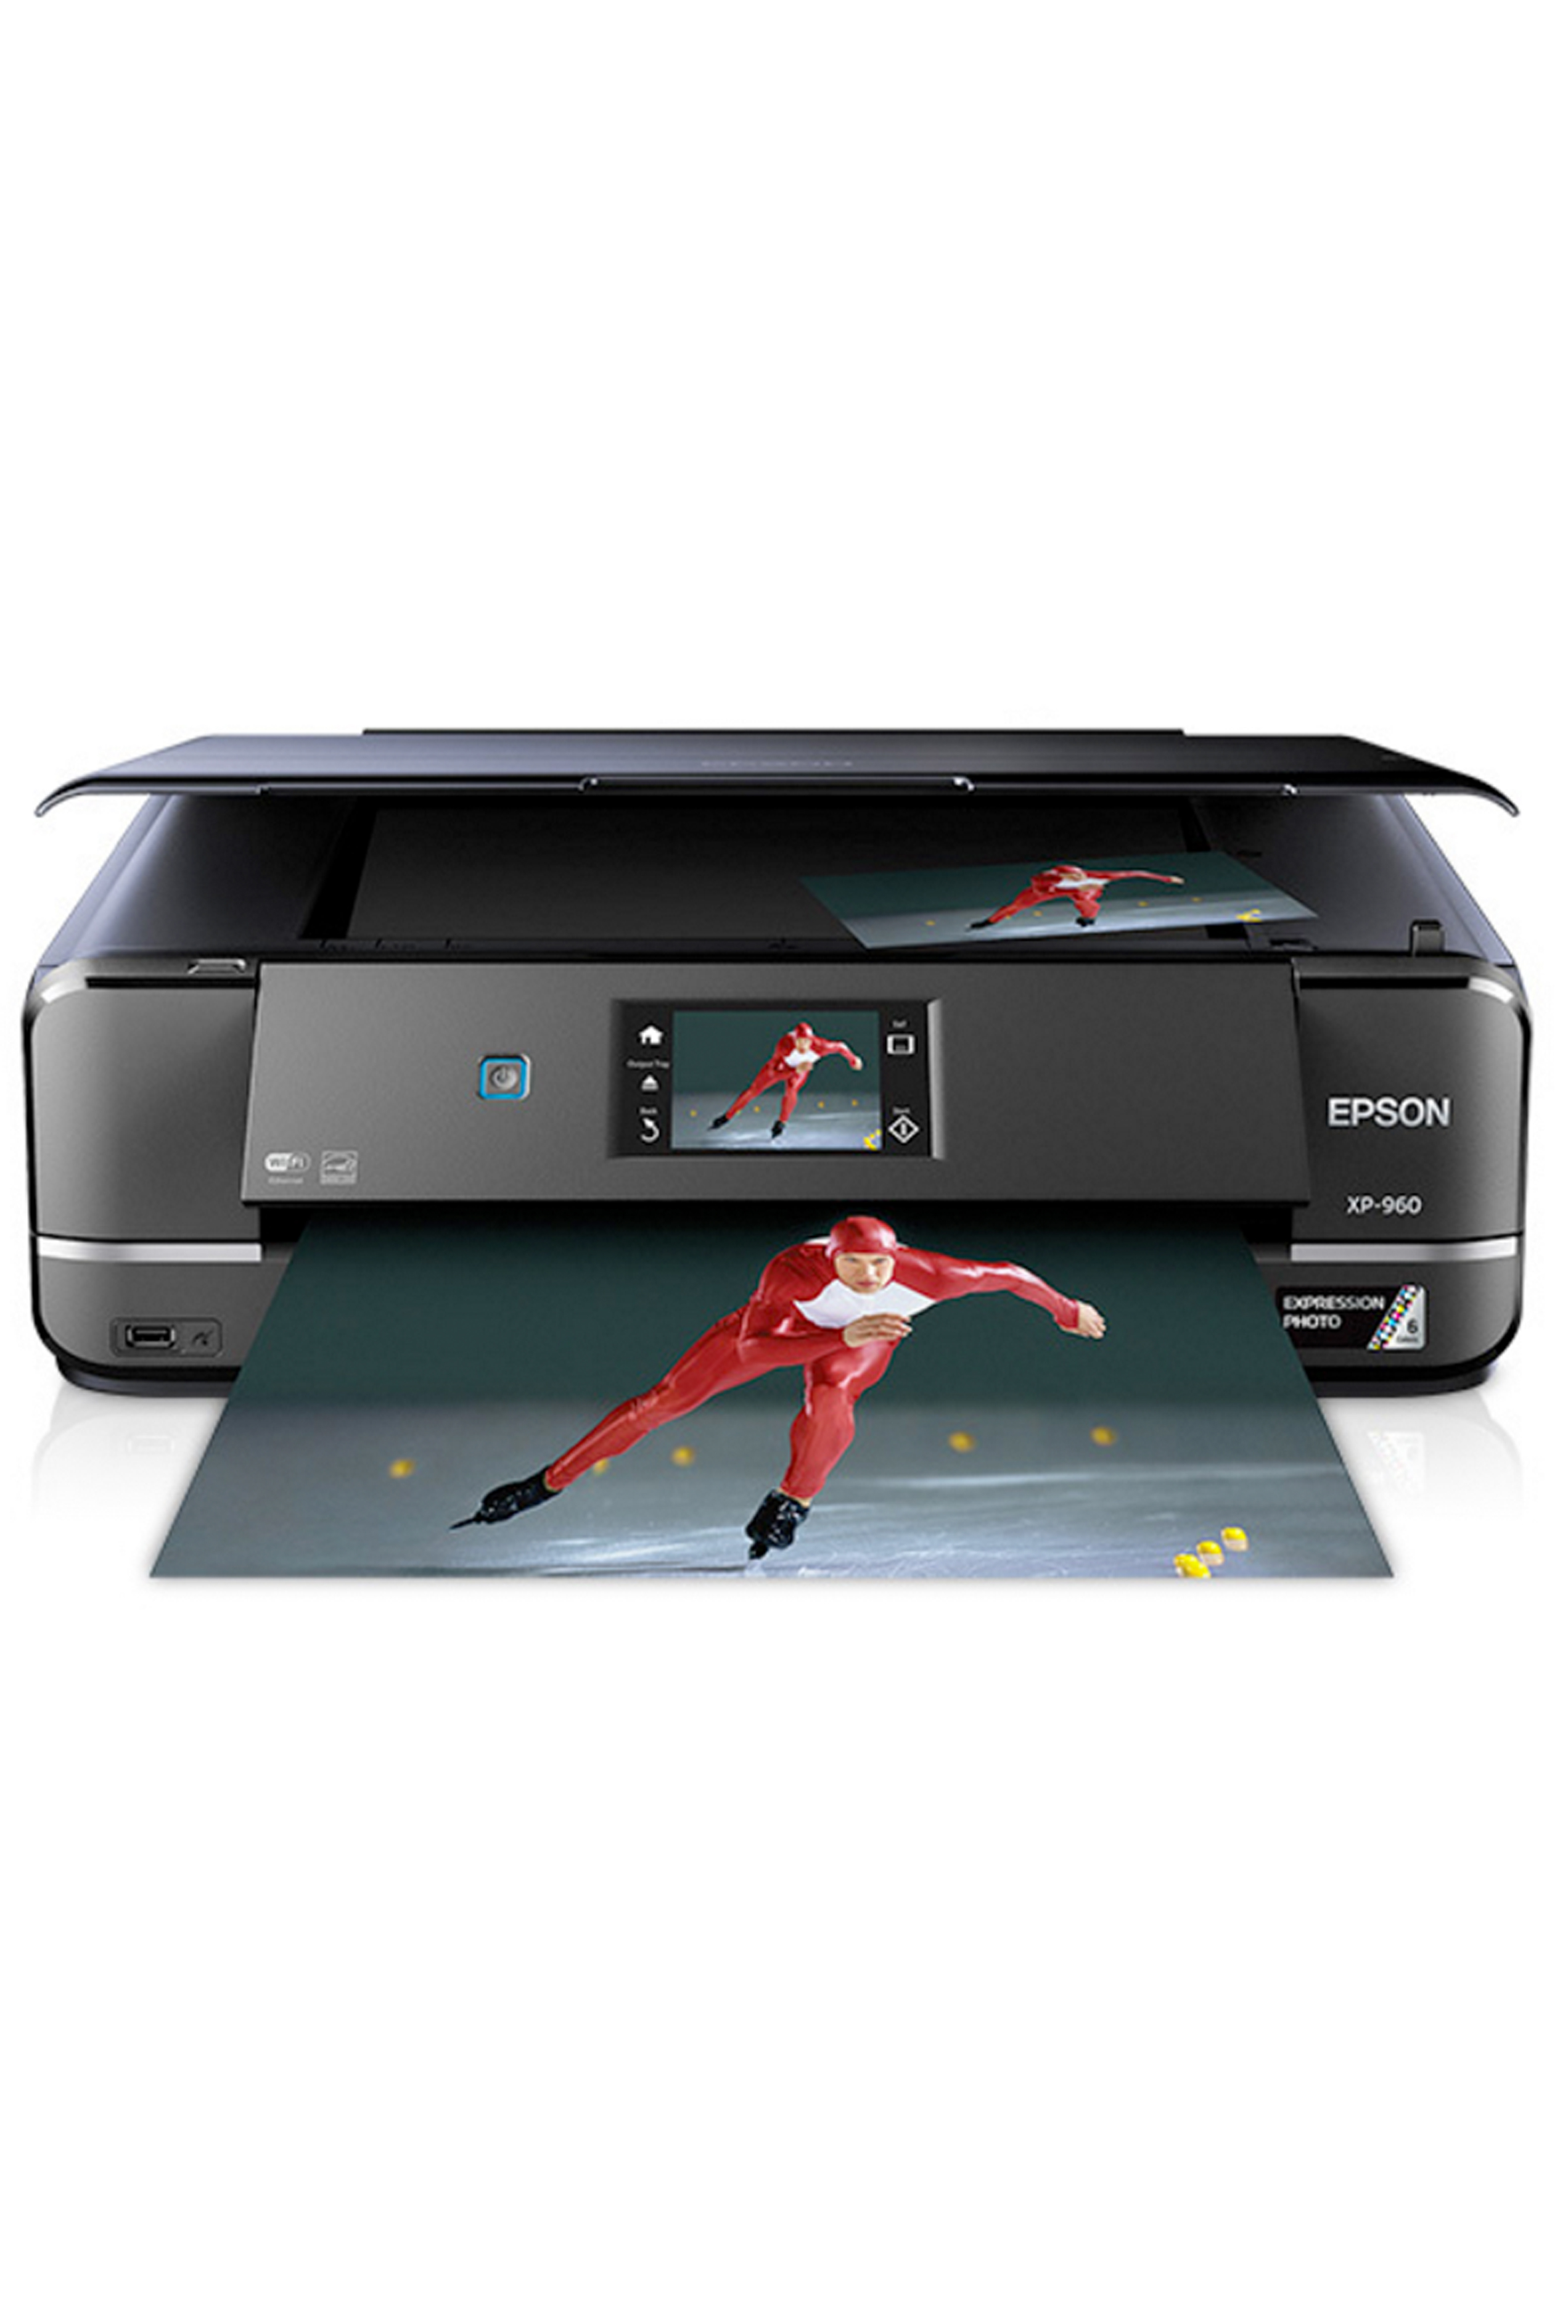 Epson Expression Photo XP-960 Small-in-One All-in-One Printer...